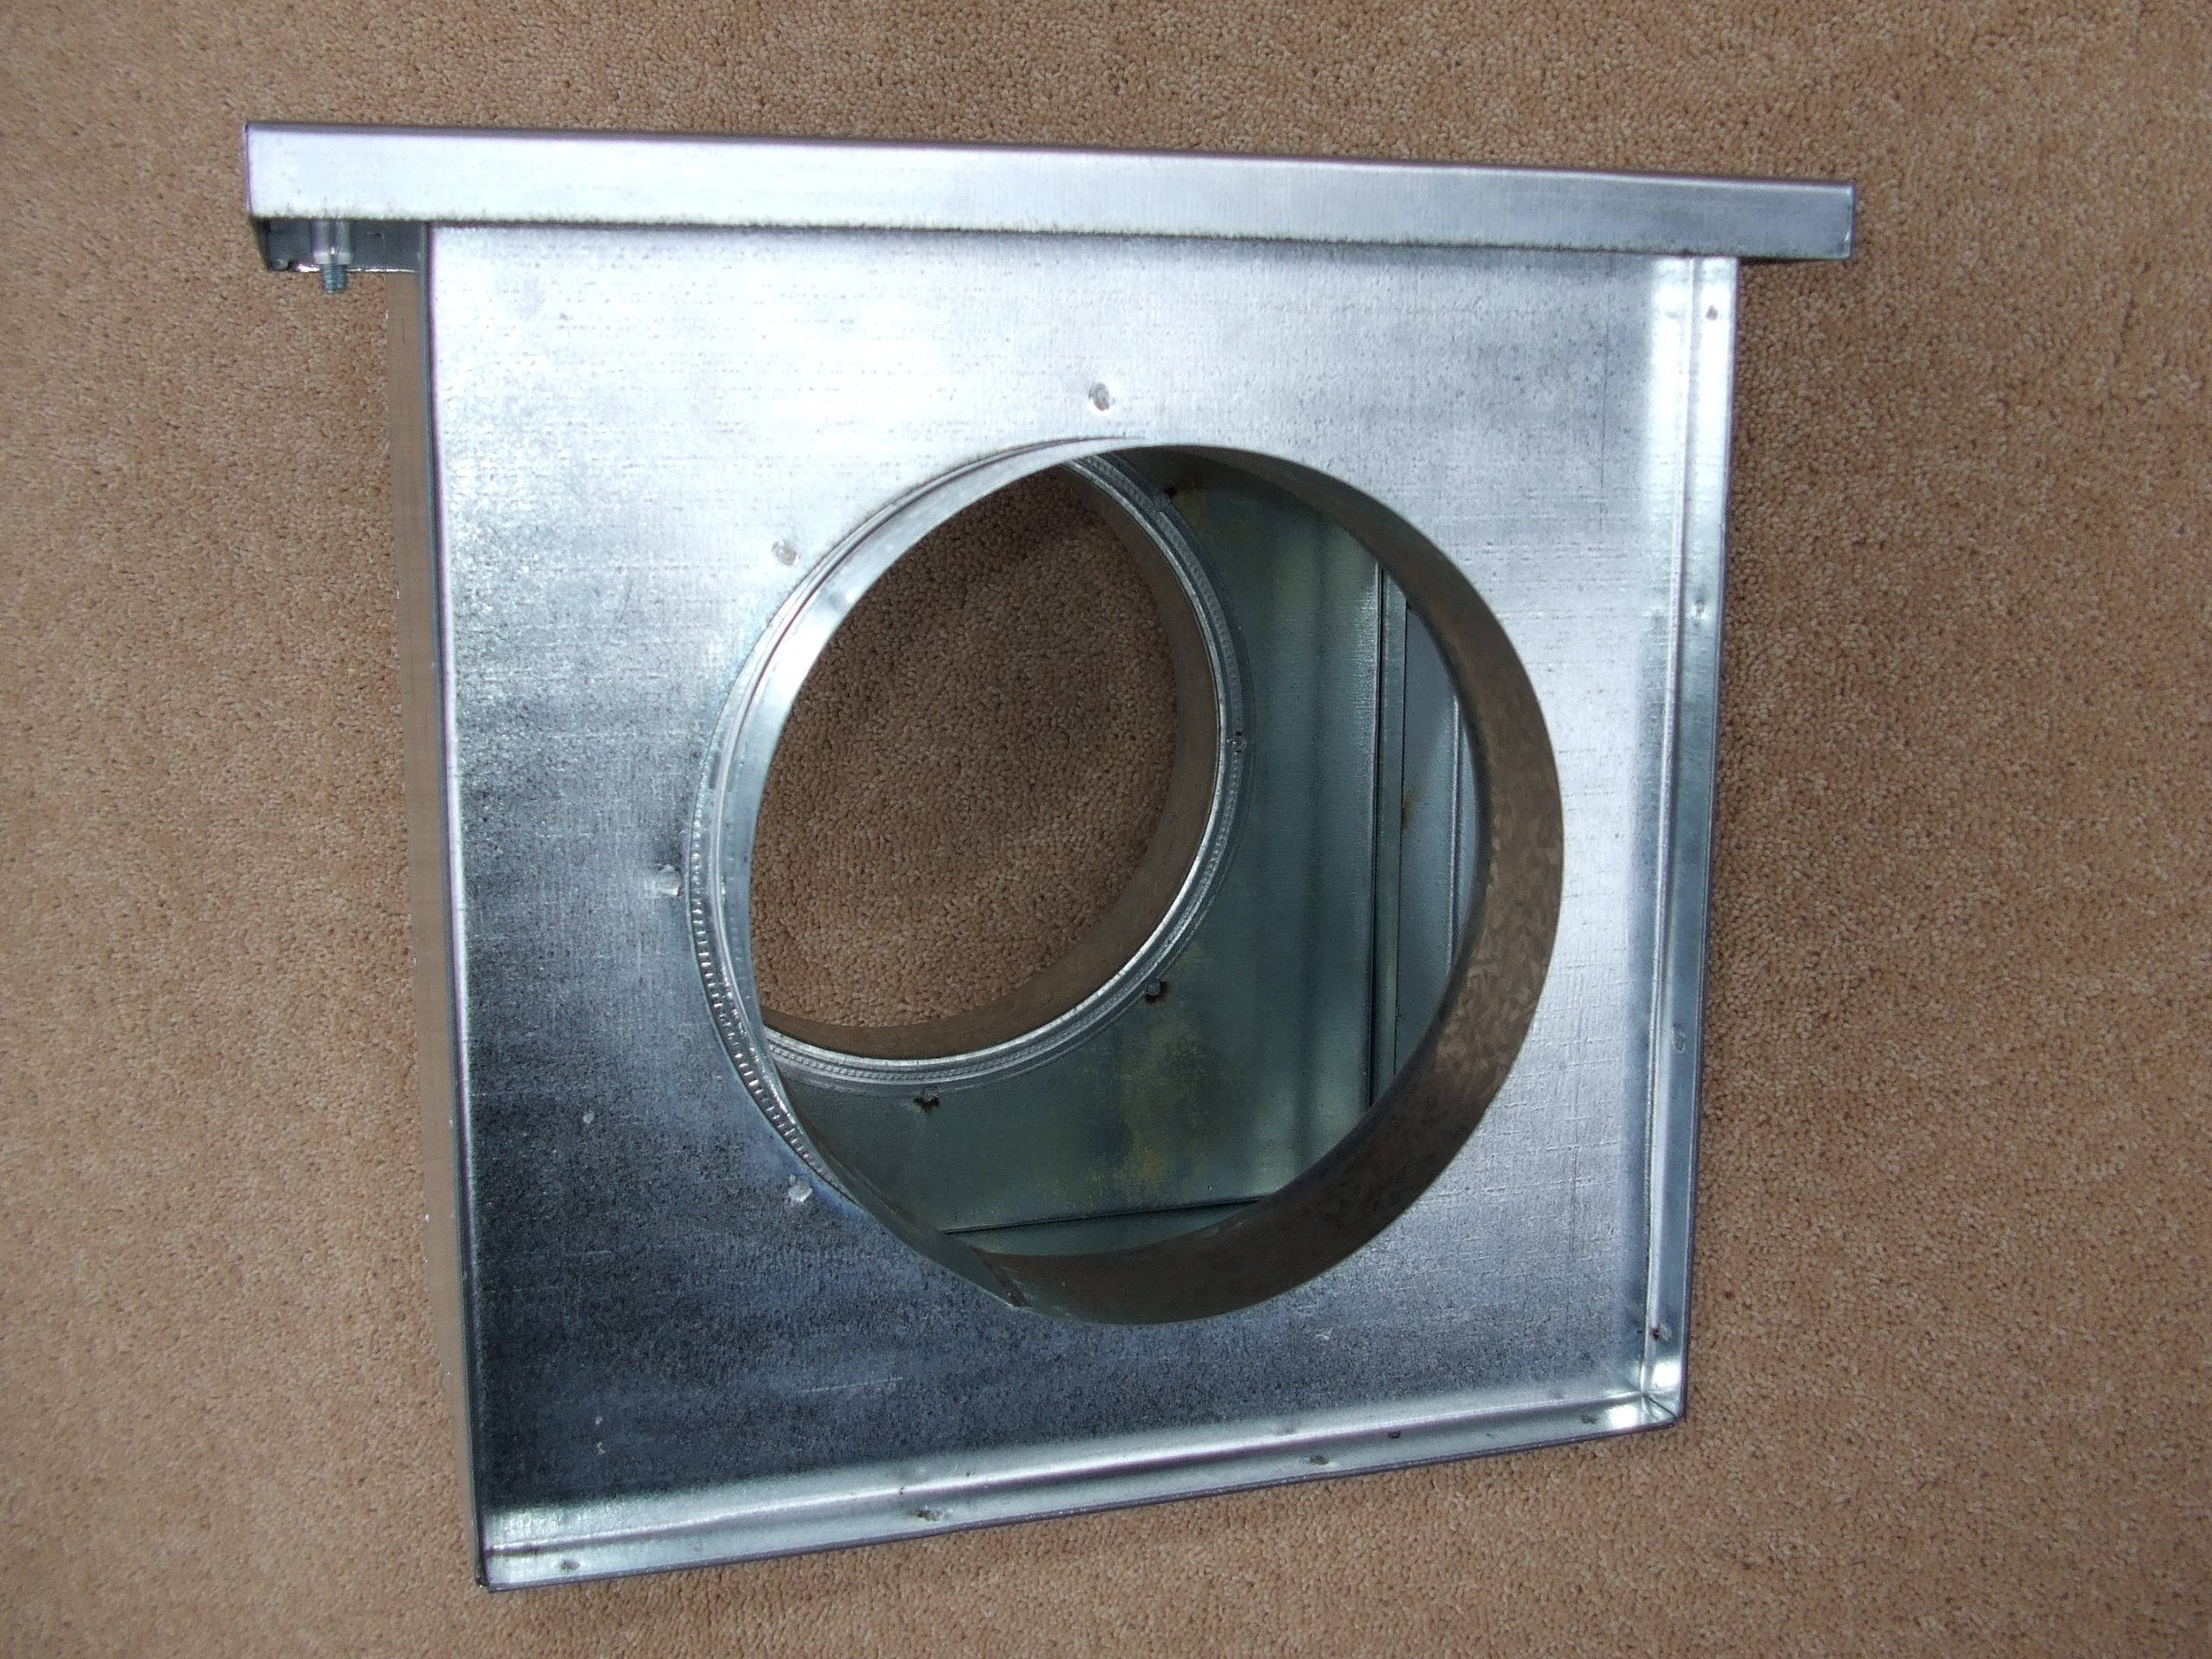 150mm diameter in-line filter box, hydroponics grow room ventilation, galvanised steel ducting by Ventilation Centre